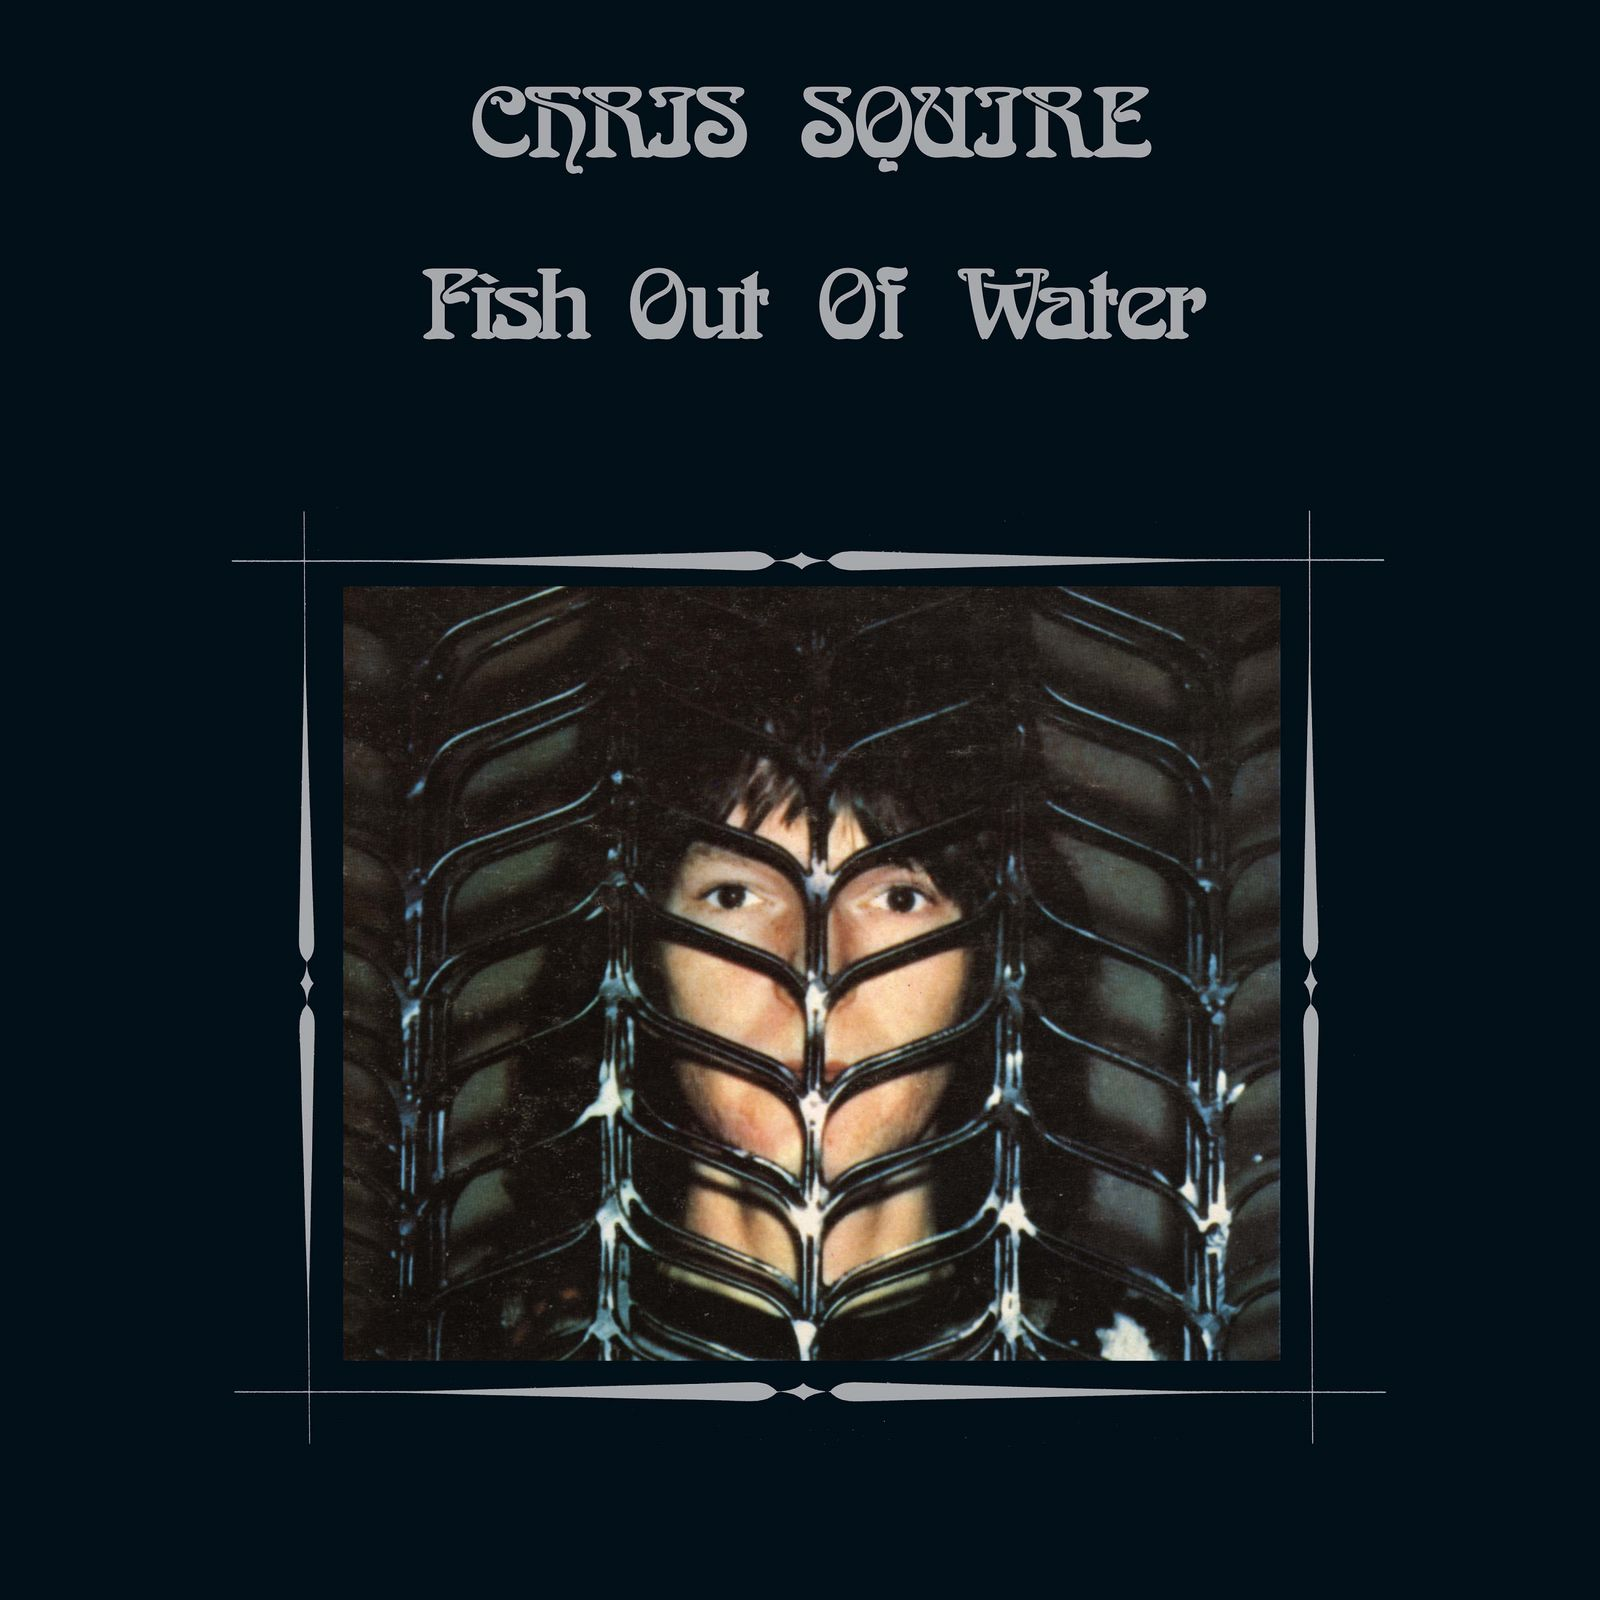 Chris Squire. Fish Out Of Water: Remastered And Expanded (2 CD)